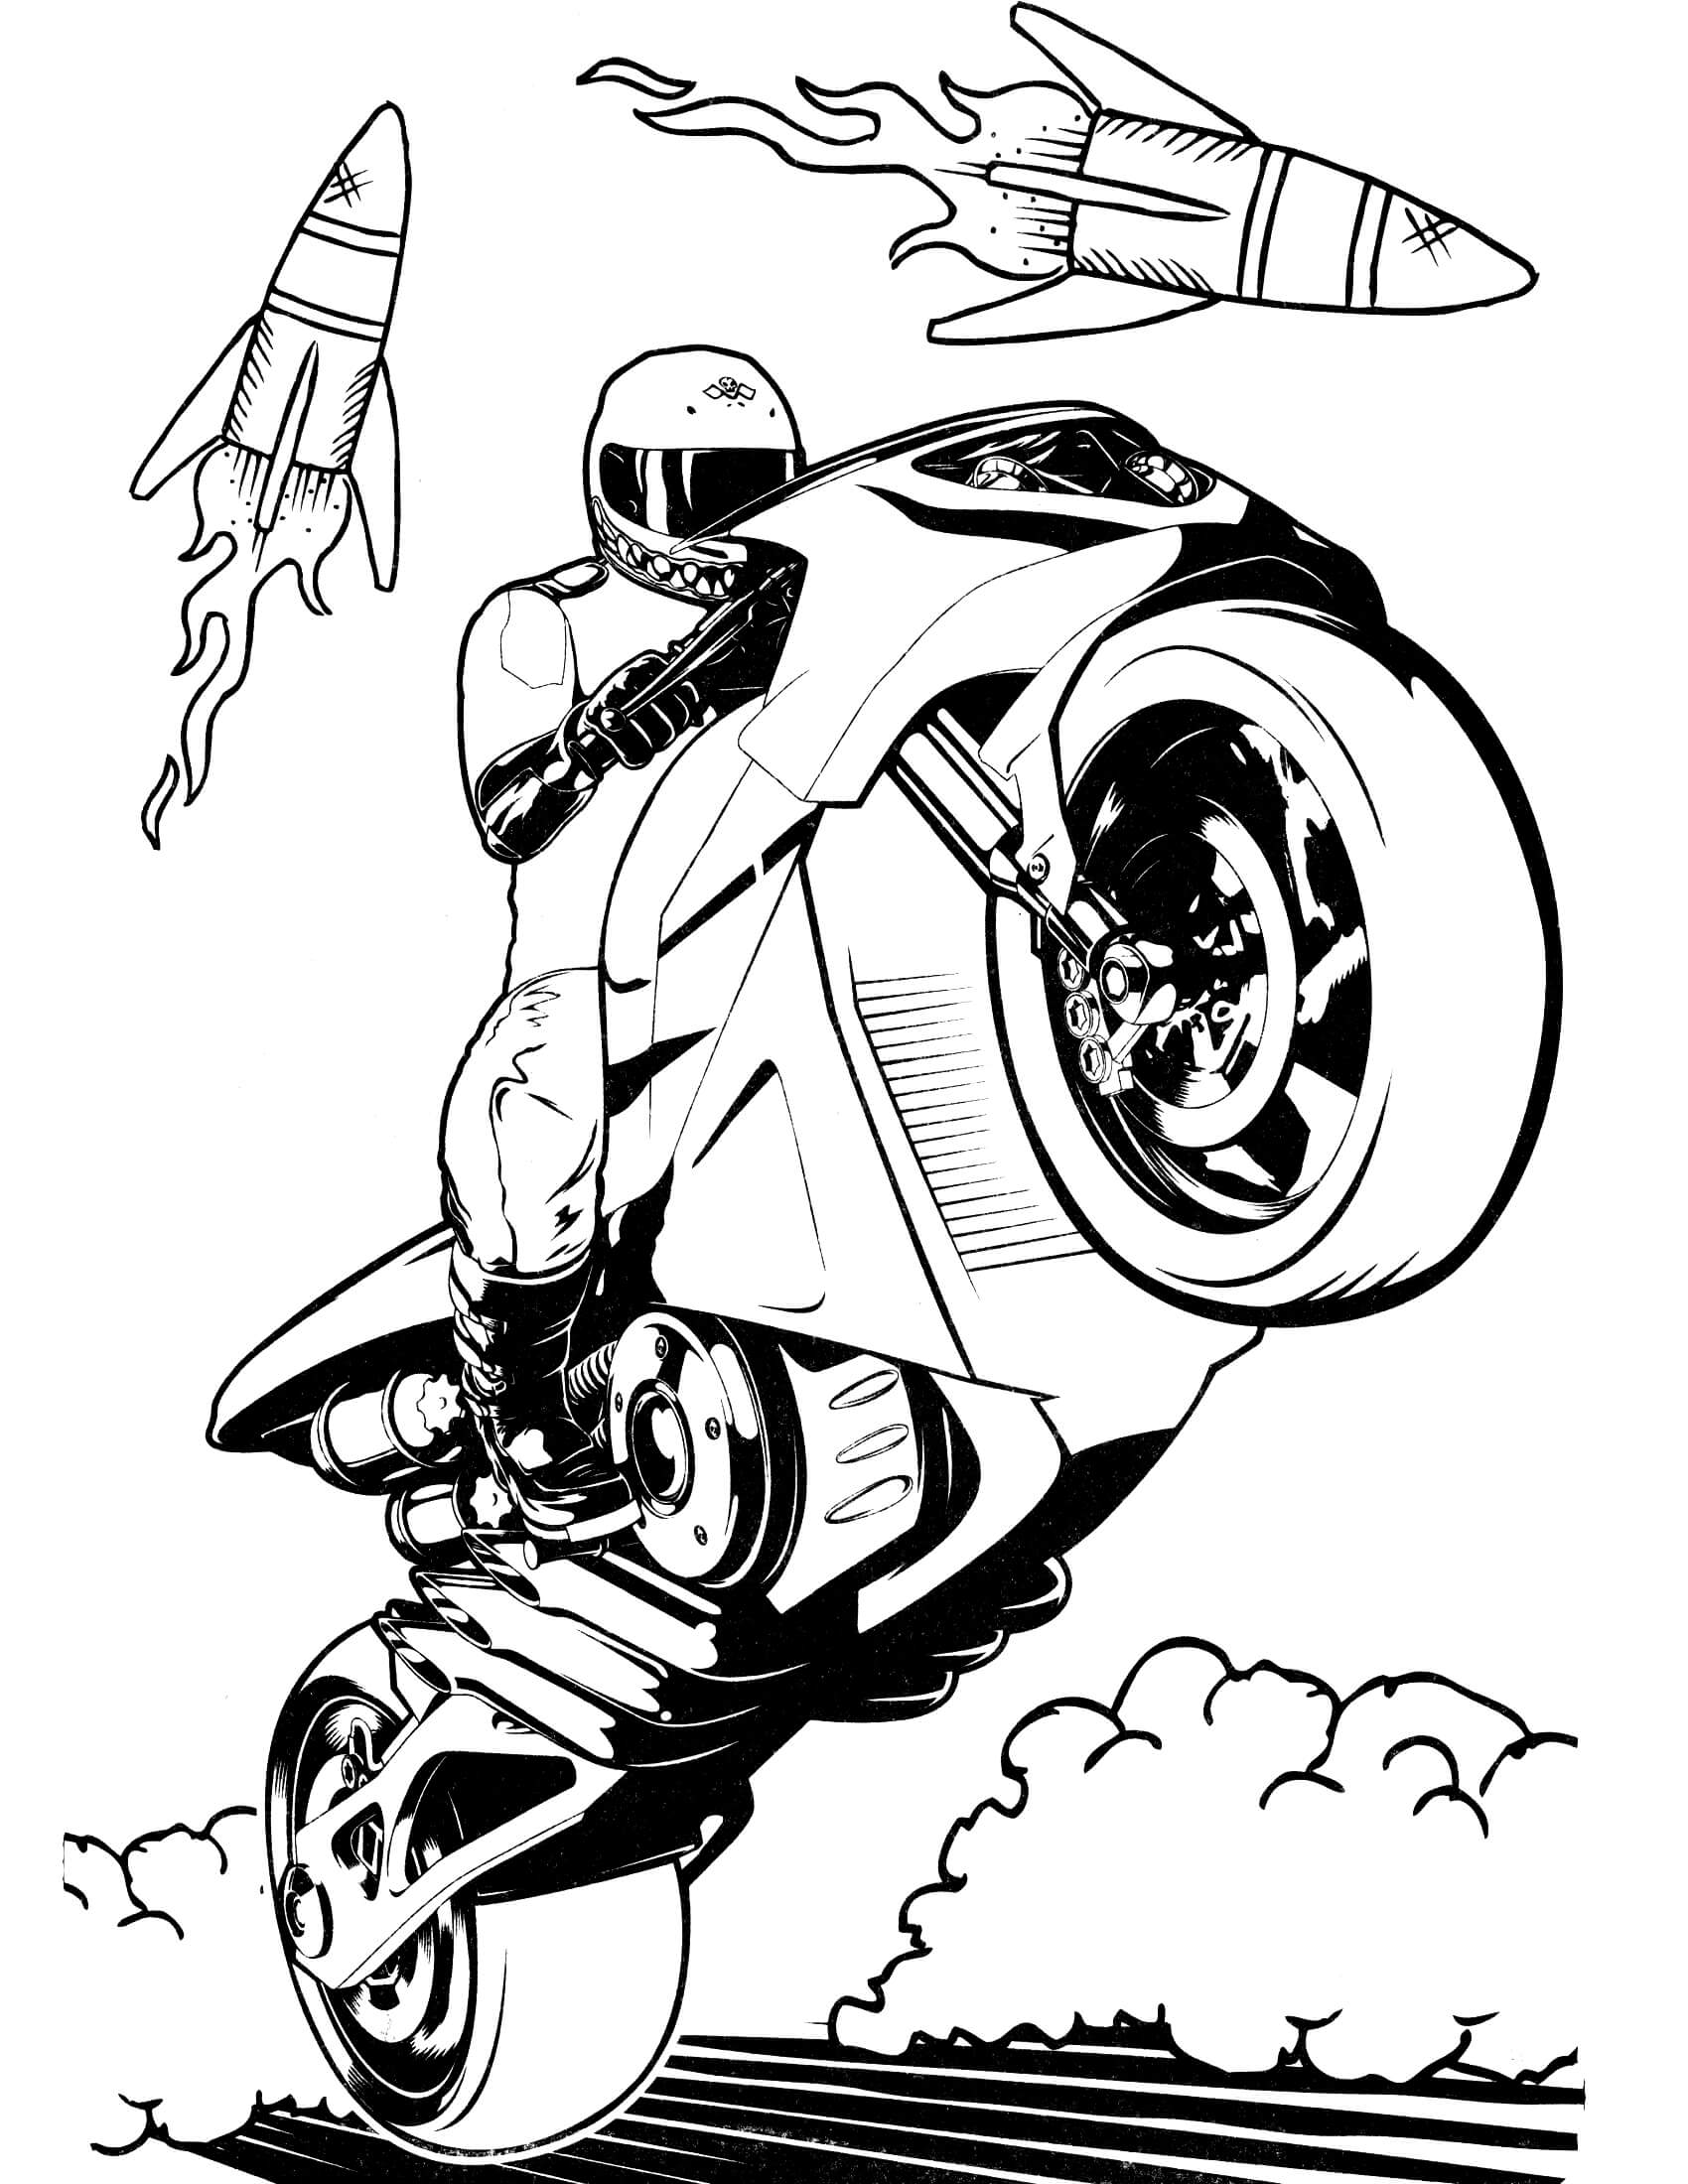 hotwheels colouring pages hot wheels 50 coloringcolorcom colouring pages hotwheels